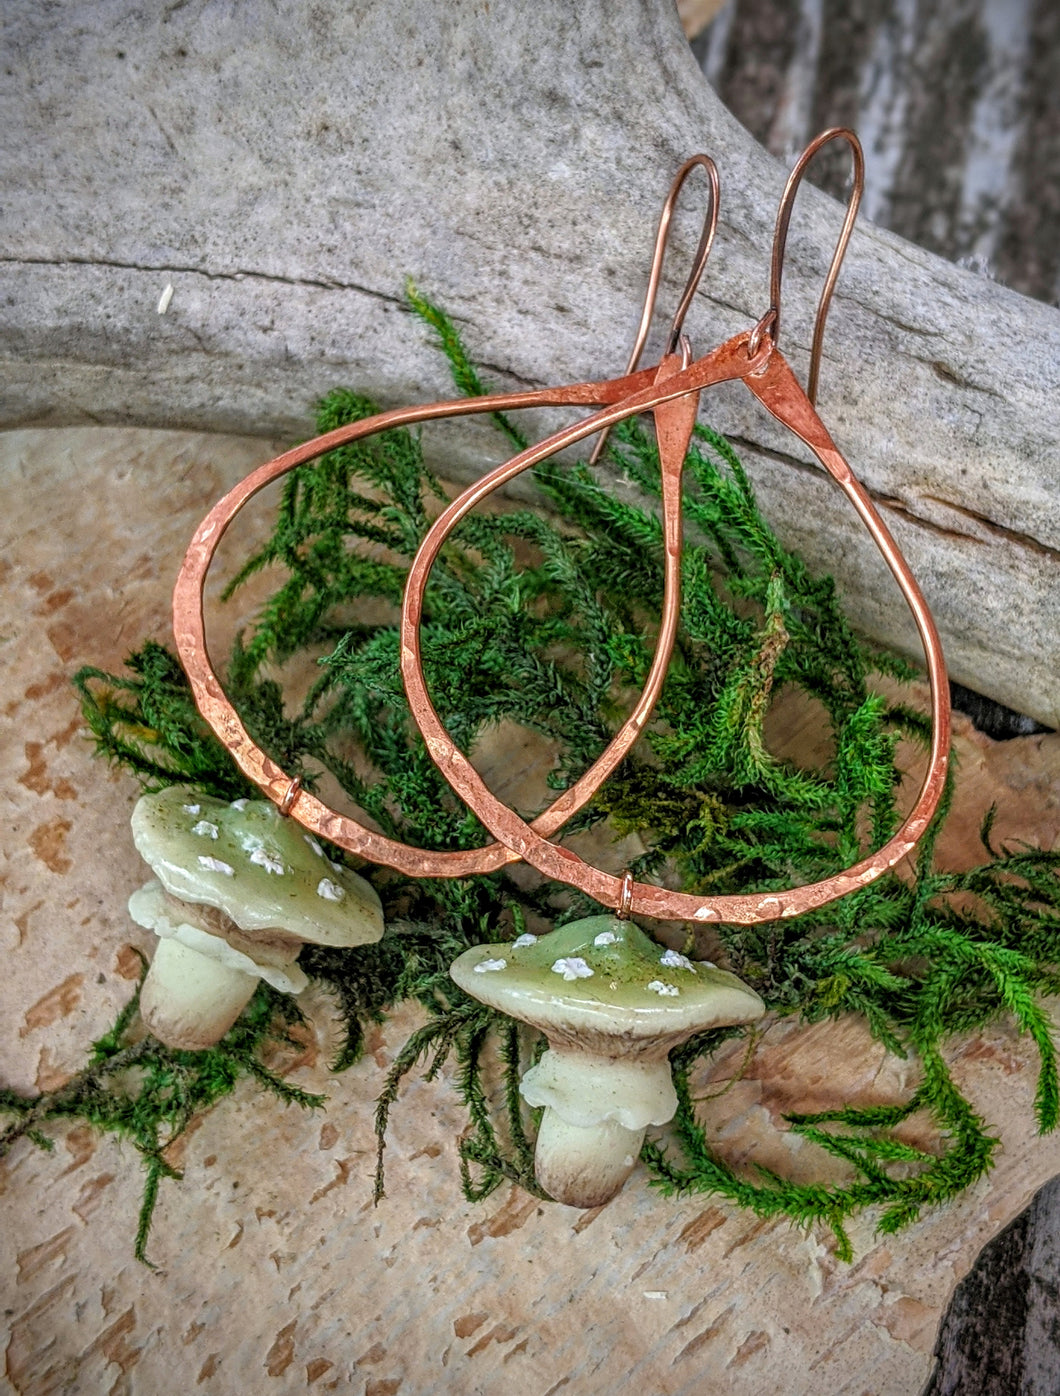 Green Amanita Mushroom & Copper Earrings - #2